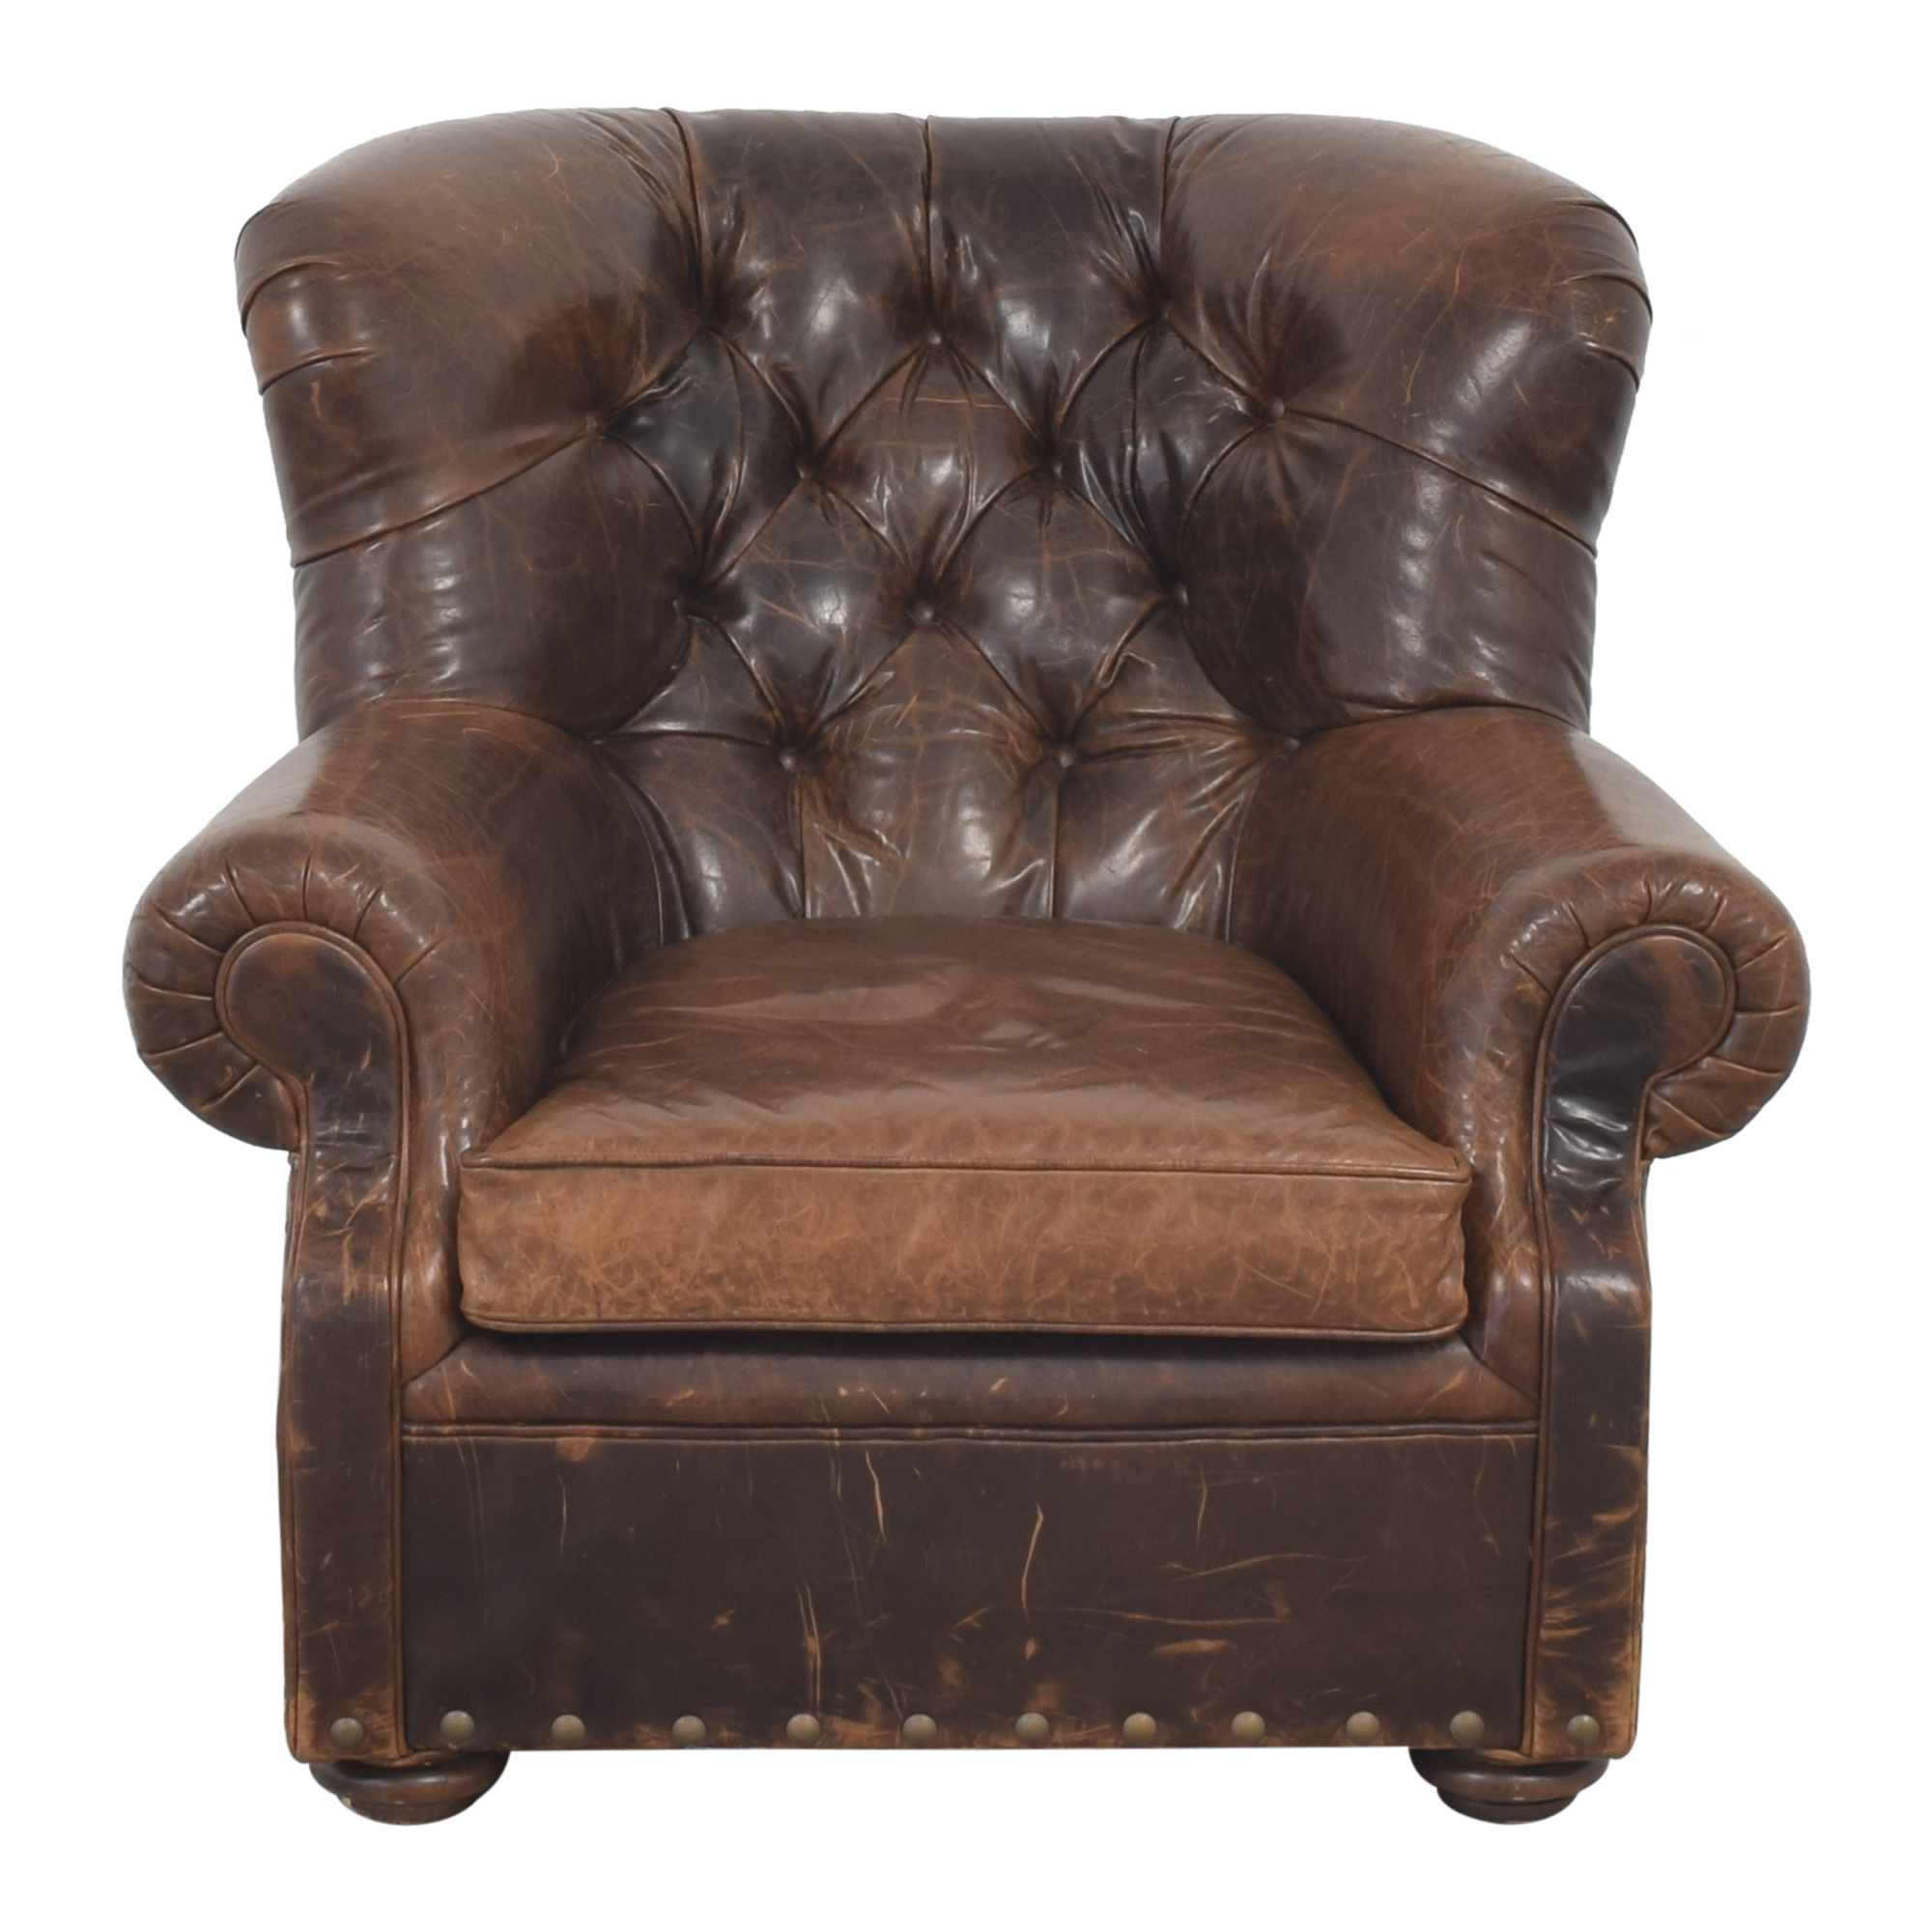 Restoration Hardware Restoration Hardware Churchill Chair price